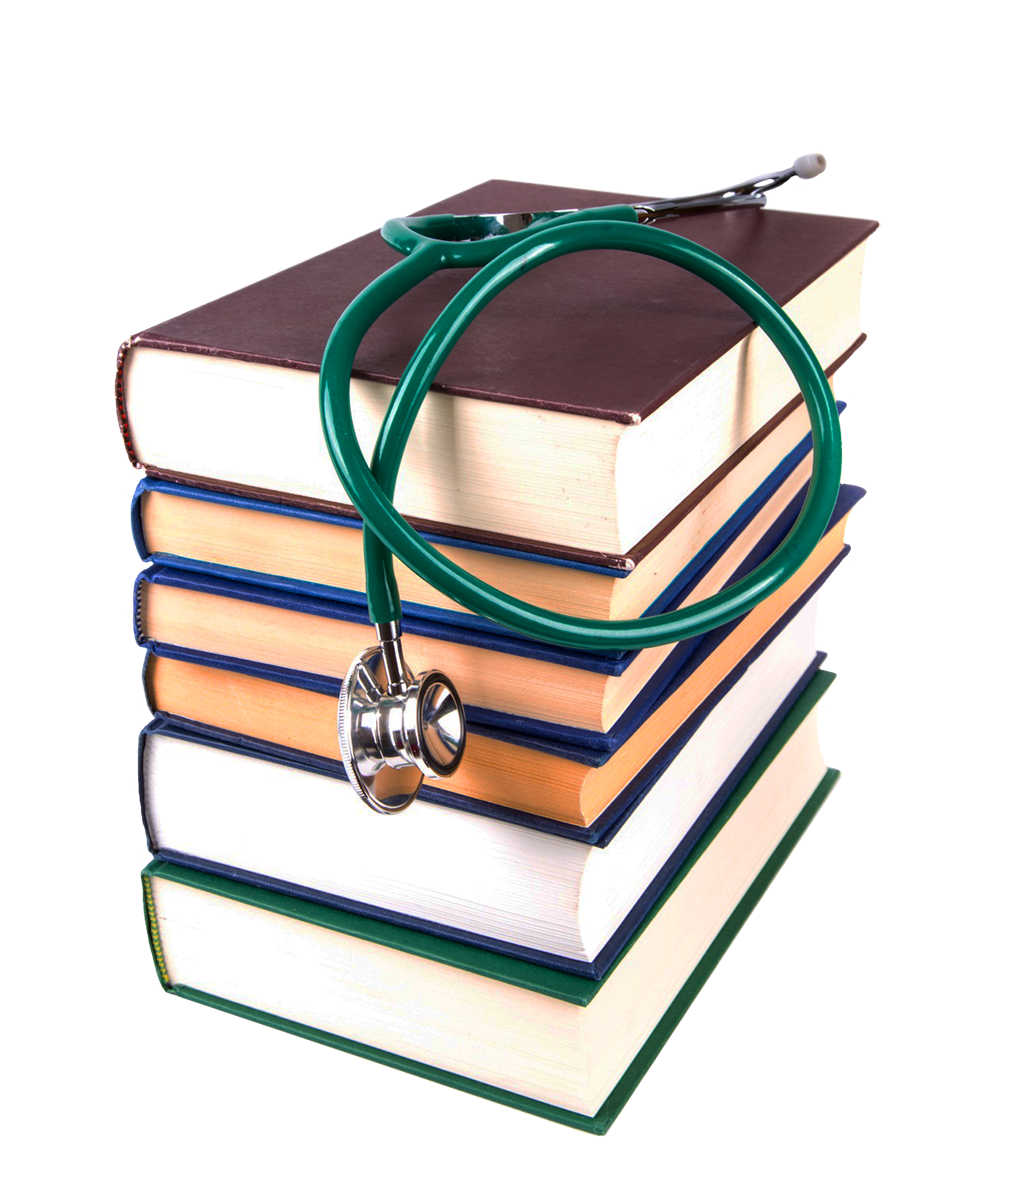 stacked books and stethoscope